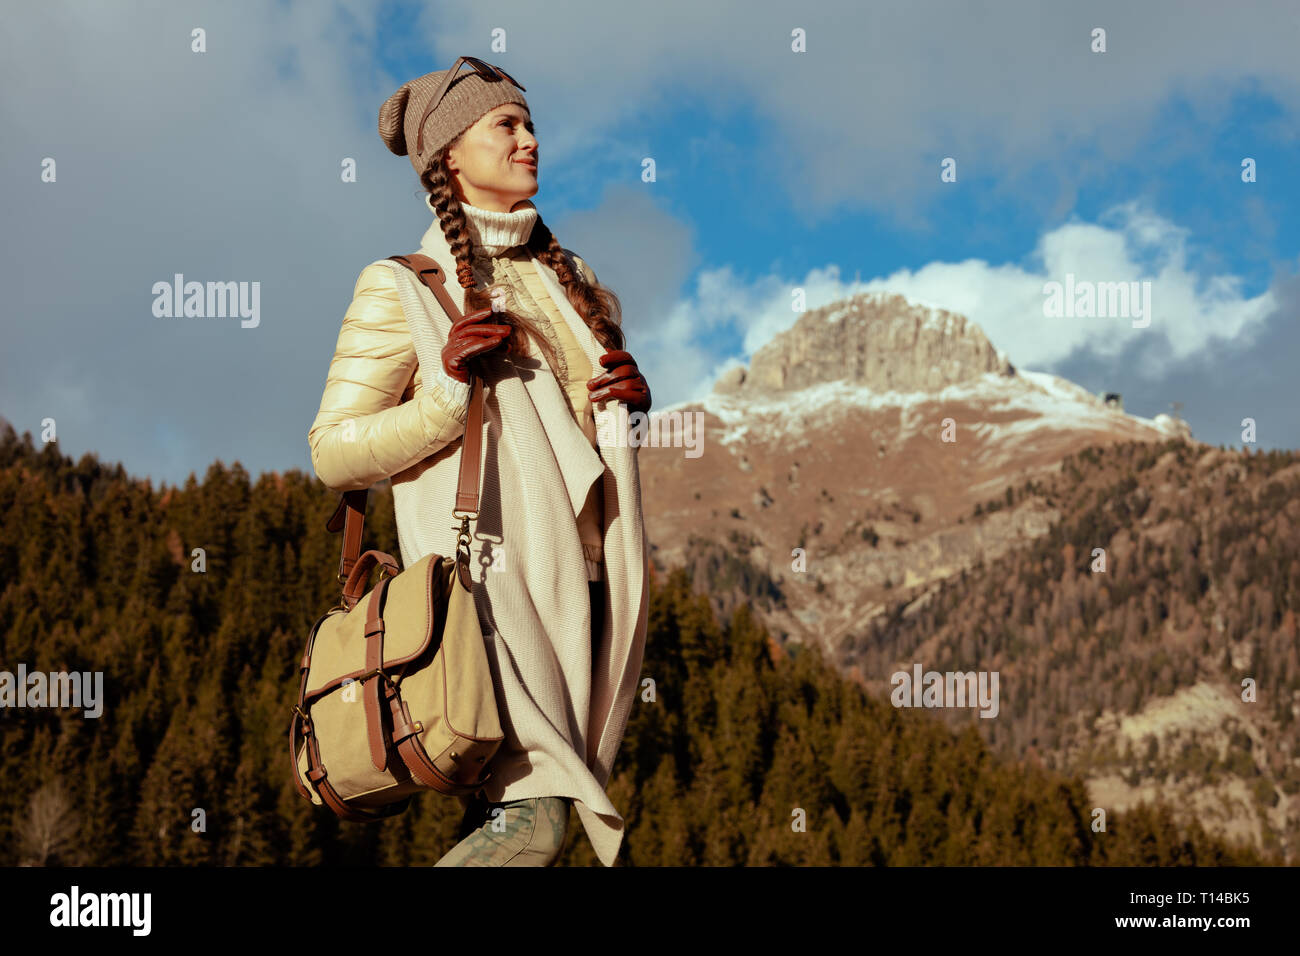 adventure woman hiker in hiking clothes with bag looking into the distance against mountain scenery in Alto Adige, Italy. - Stock Image